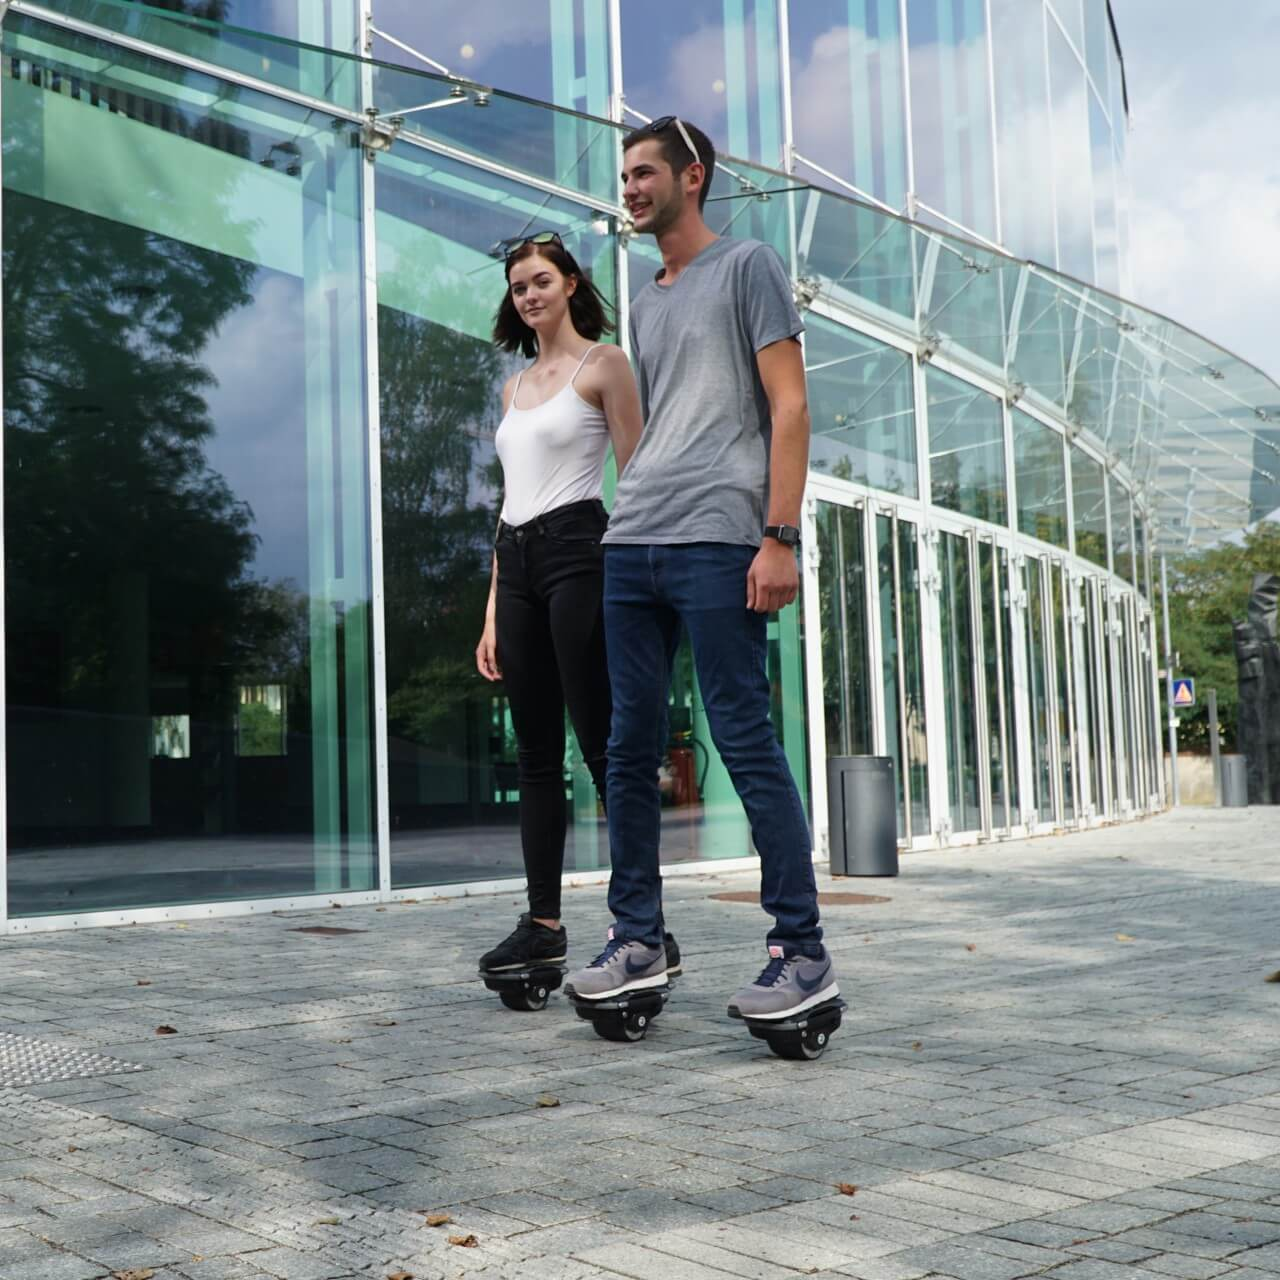 Robway Hovershoes S1